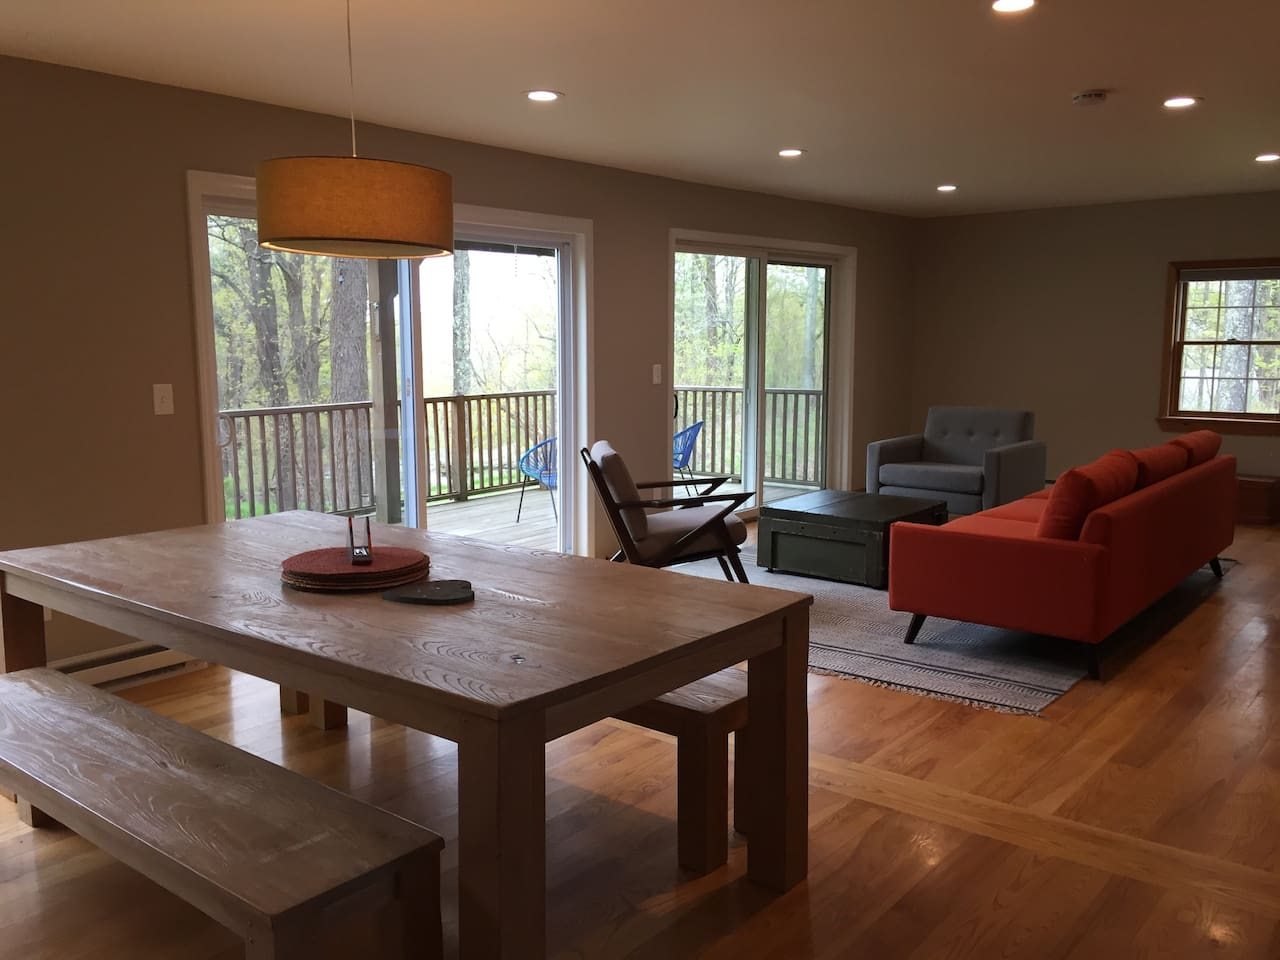 Dining table with seating for 10, living area with view out to landscaped yard